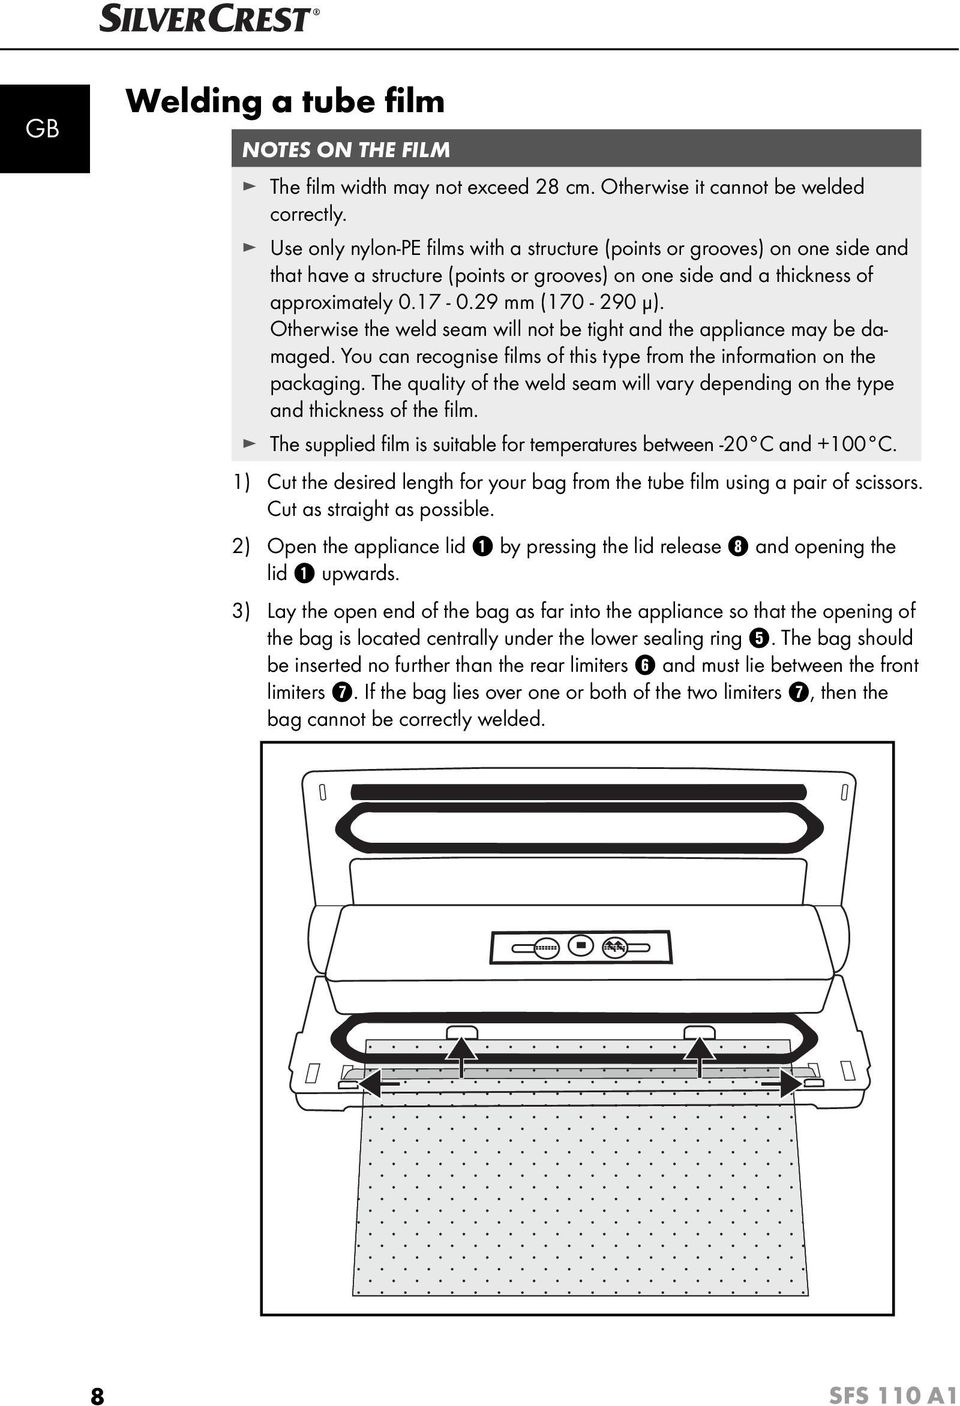 Otherwise the weld seam will not be tight and the appliance may be damaged. You can recognise fi lms of this type from the information on the packaging.